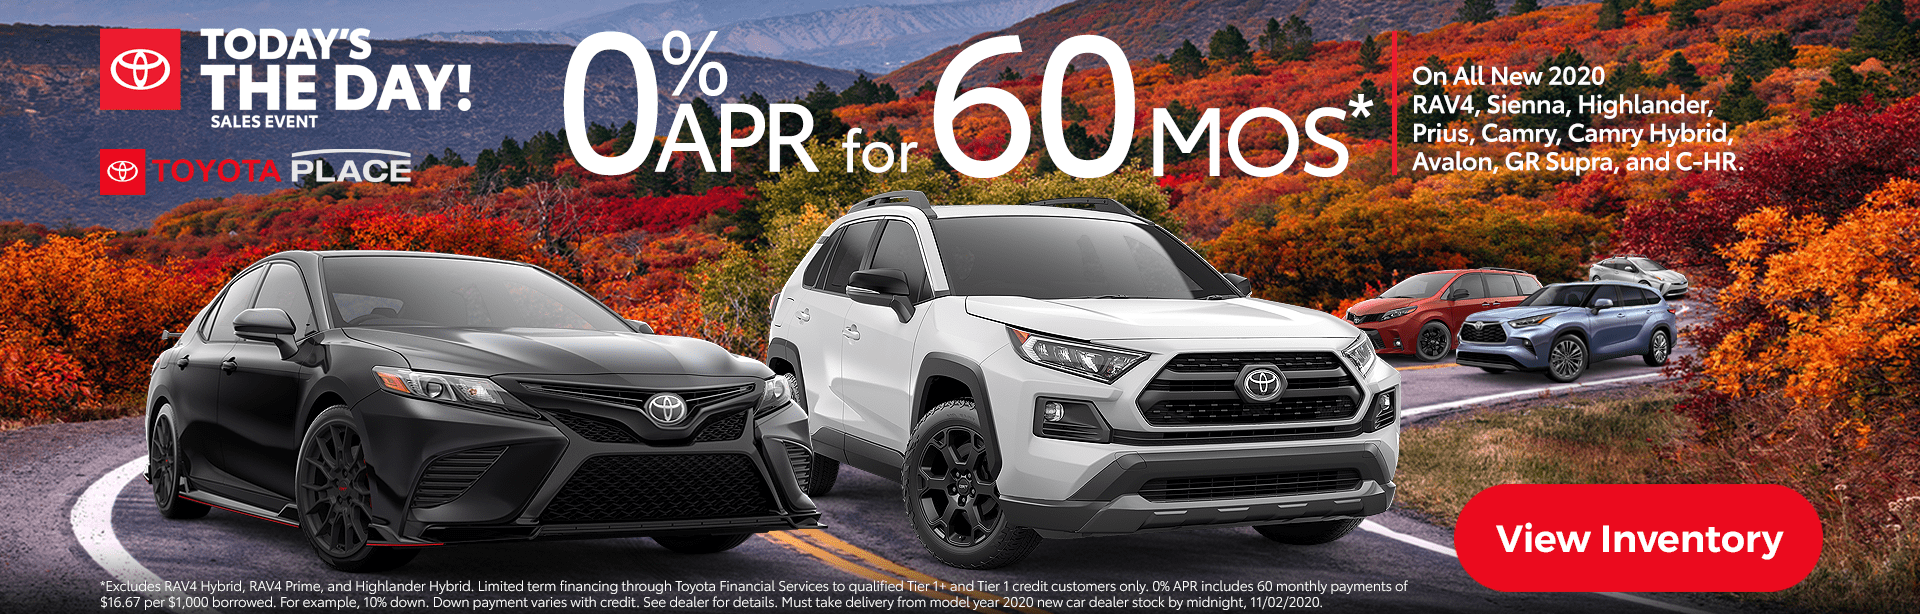 Toyota Special Deals, APR Finance, Lease, October 2020